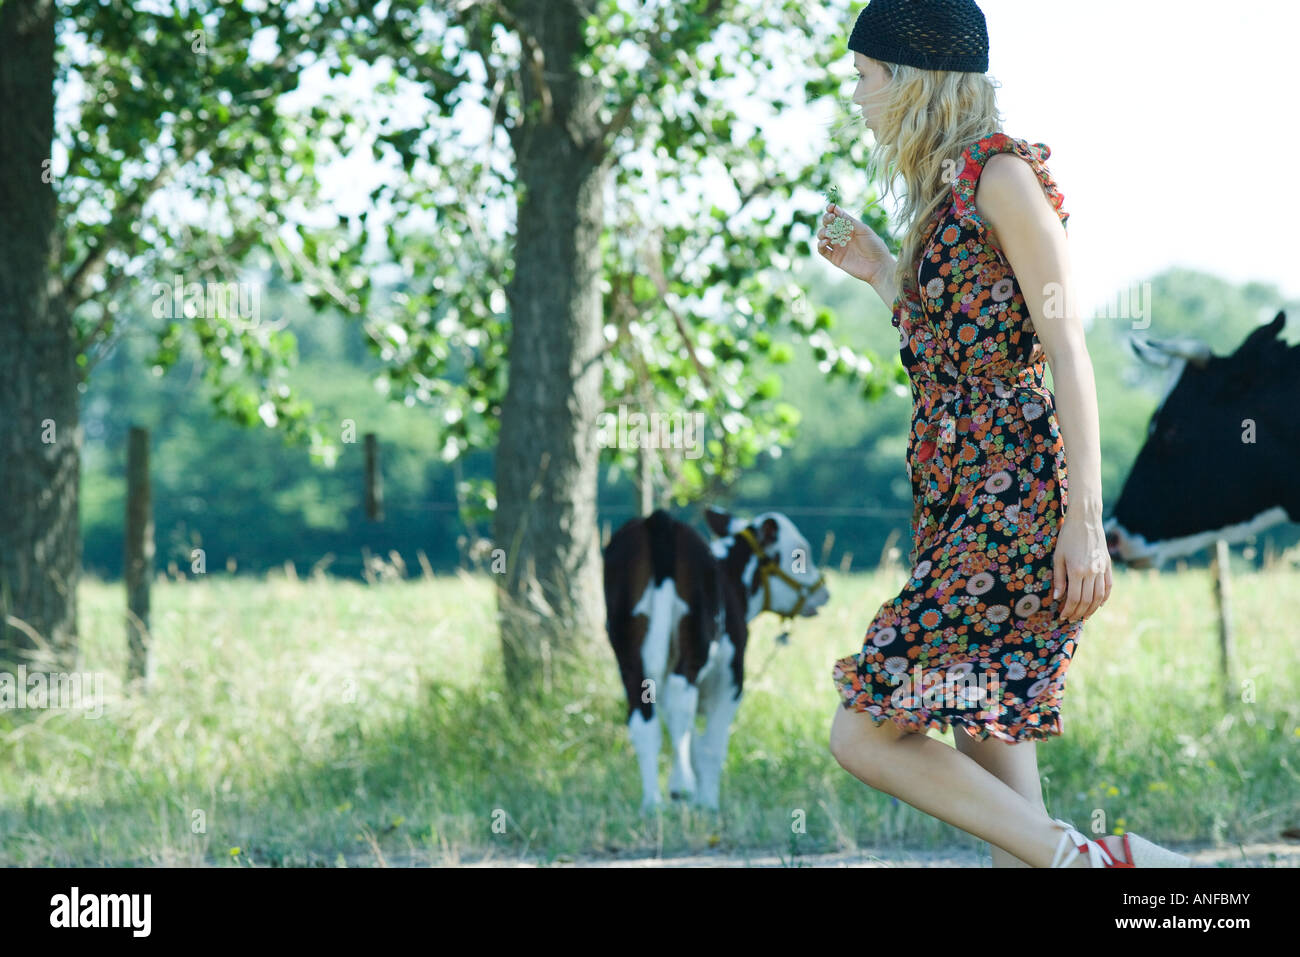 Young woman walking past cows, side view - Stock Image